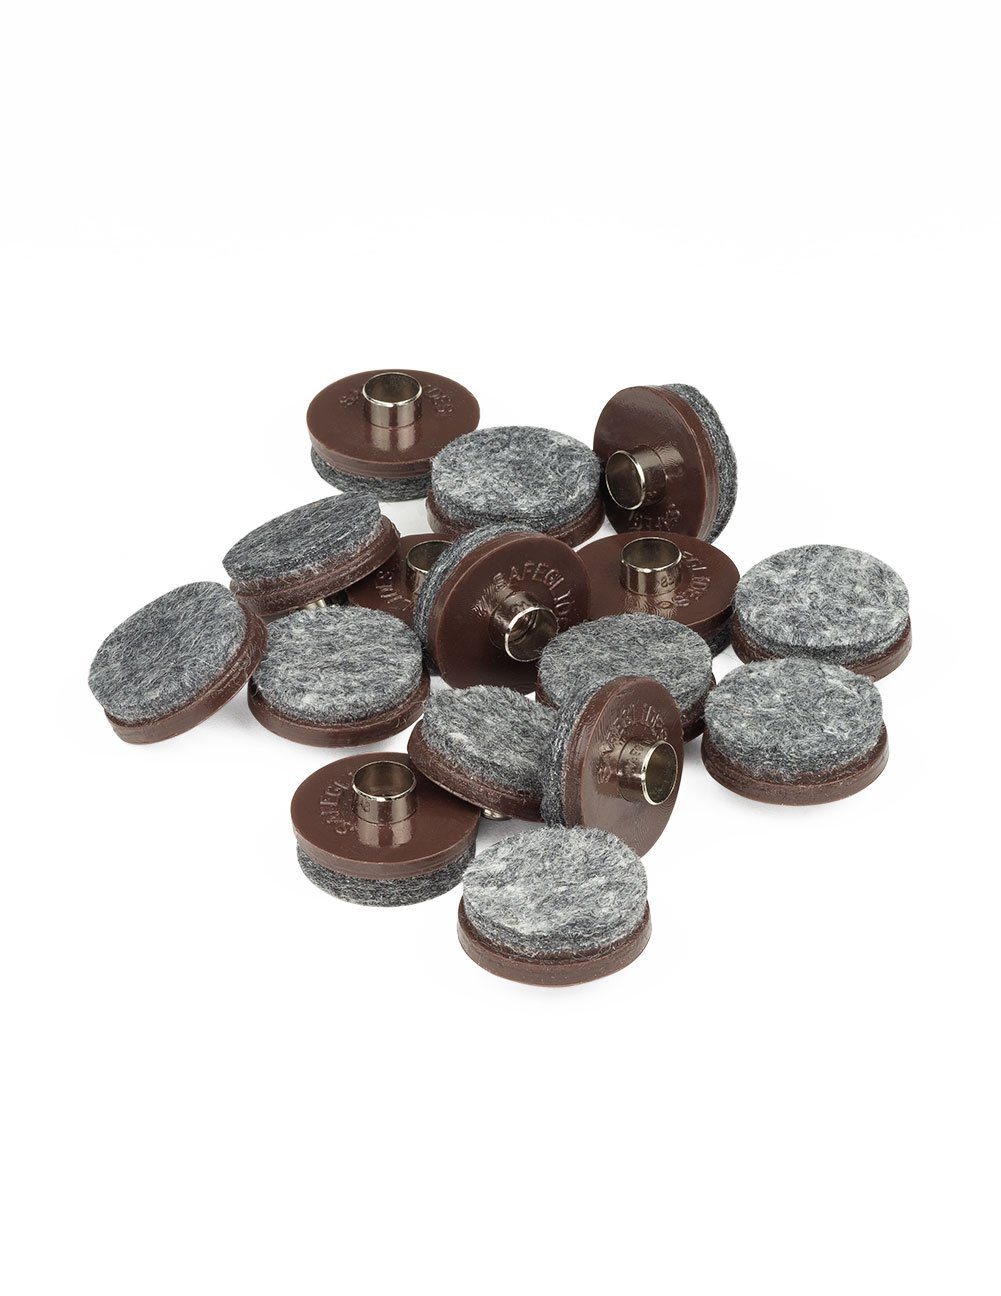 1 INCH DIAMETER FELT GLIDER - BROWN, 8 PIECE PACK by The Felt Store